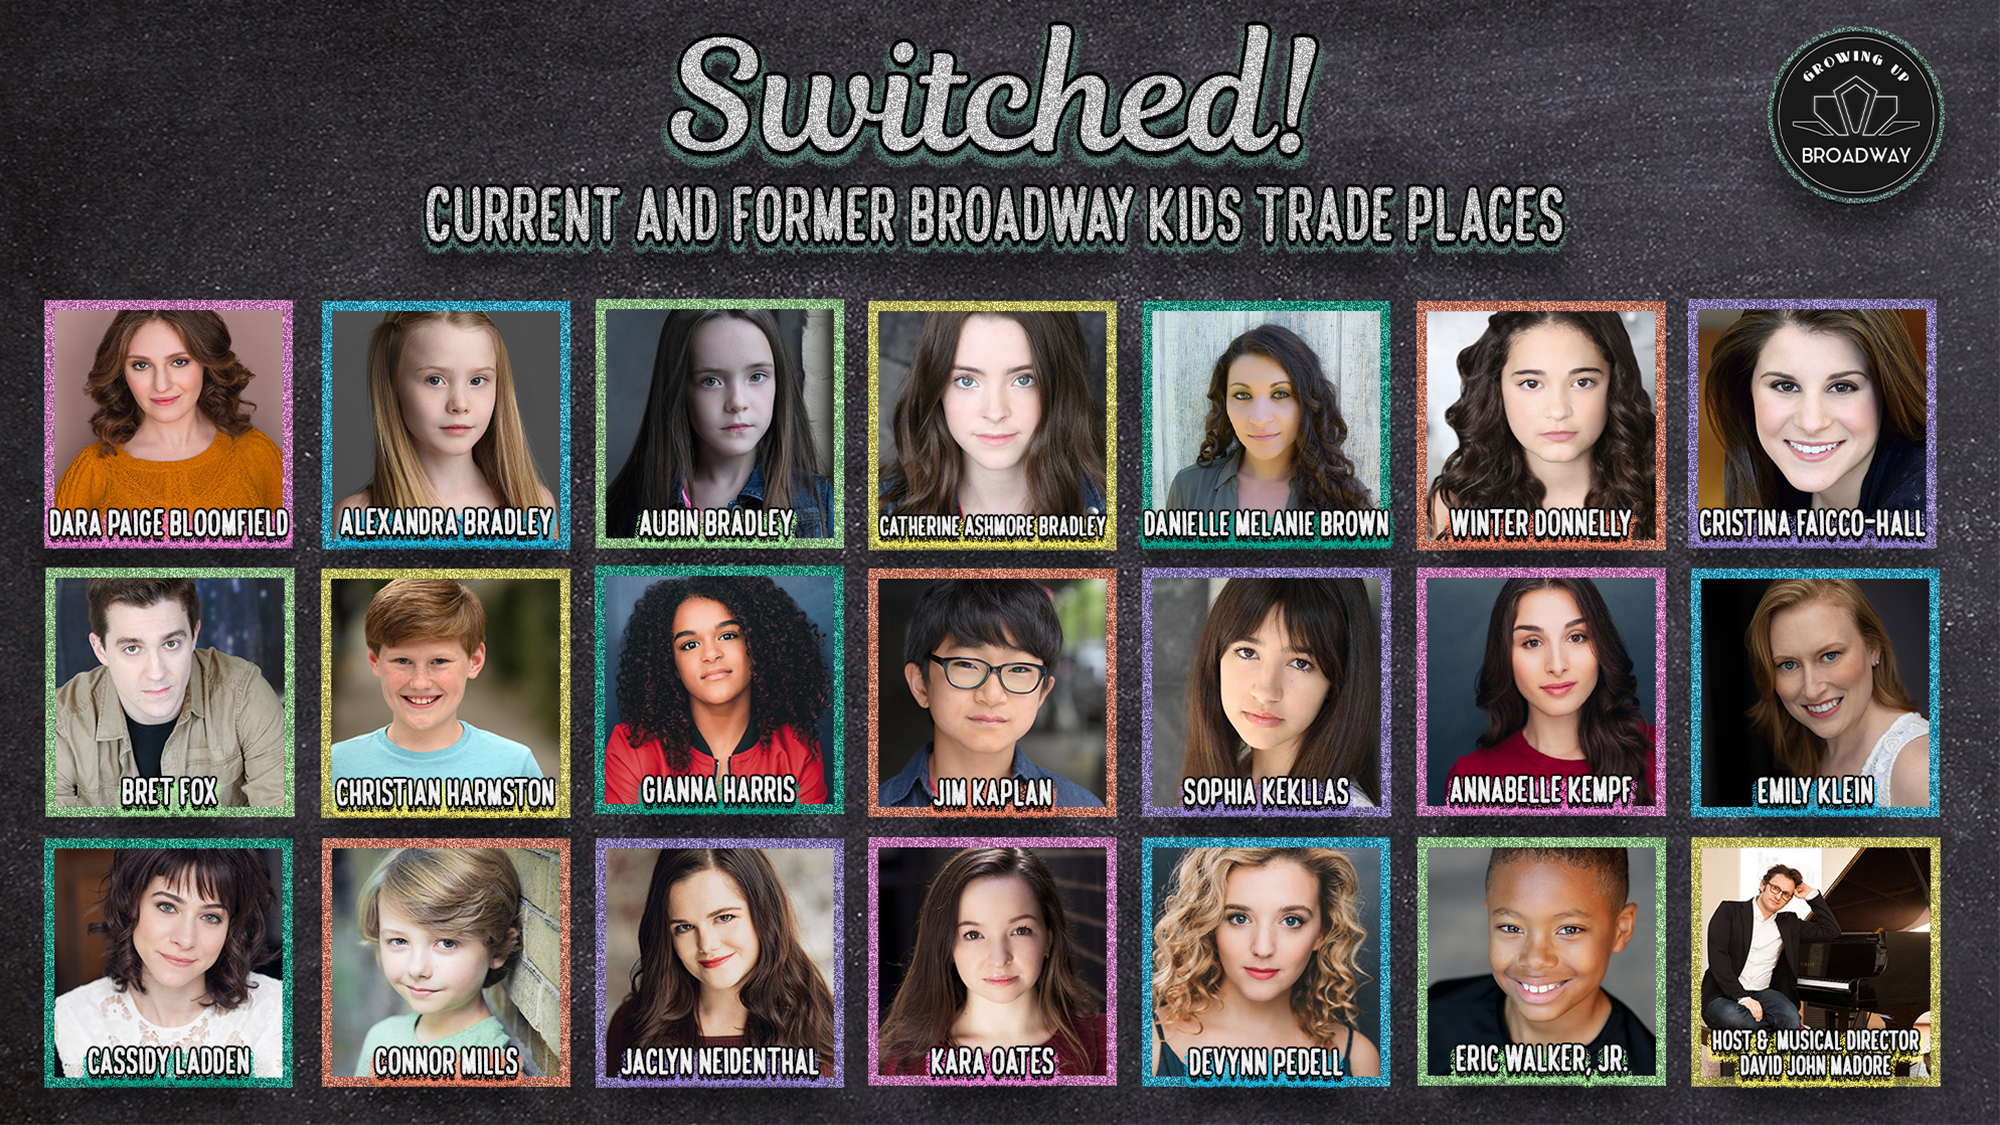 Switched: Current and Former Broadway Kids Trade Places